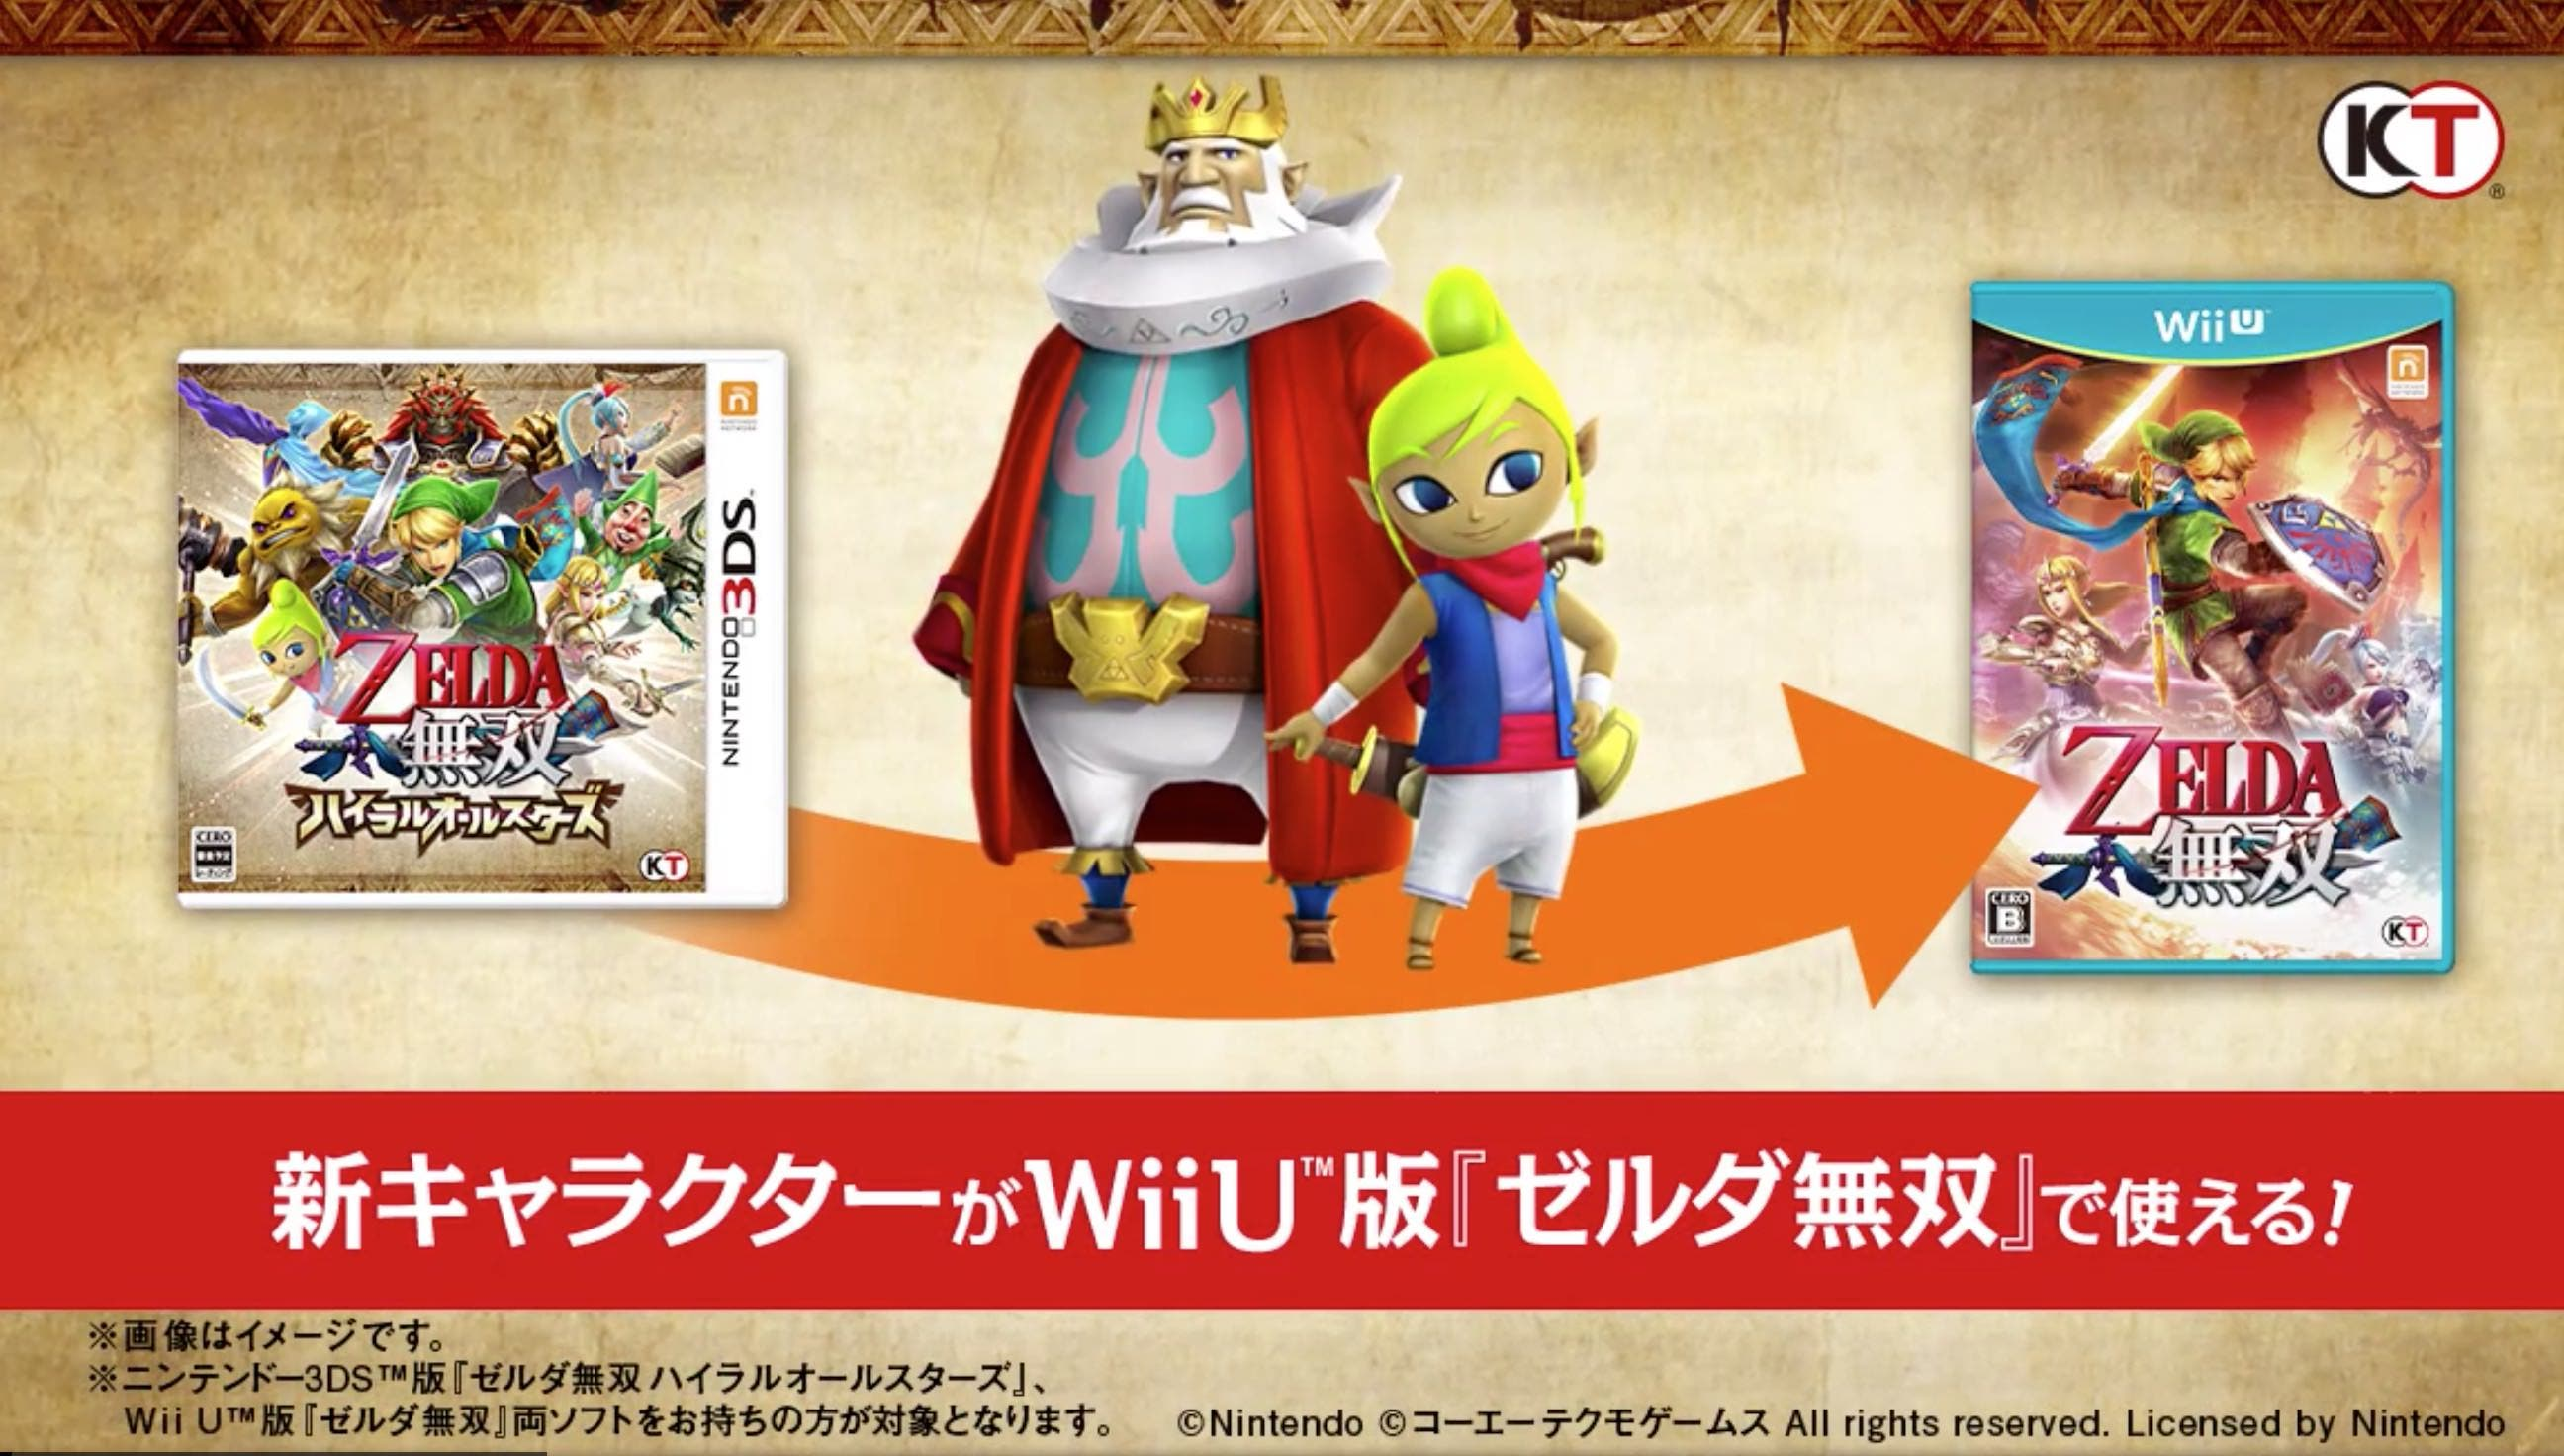 'Hyrule Warriors: All Stars' presentado para Nintendo 3DS